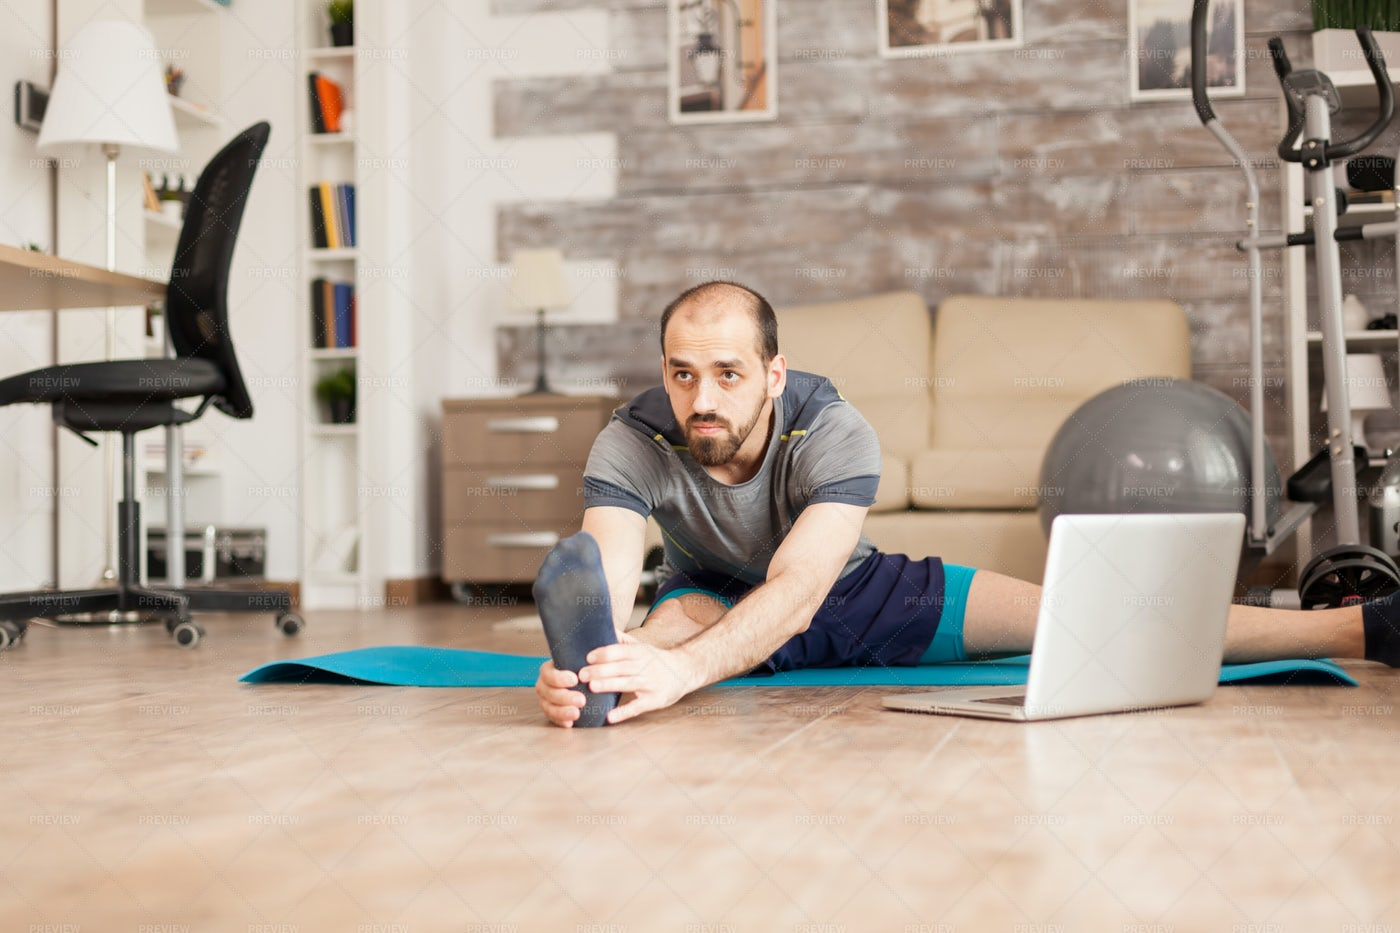 Legs Stretching At Home: Stock Photos